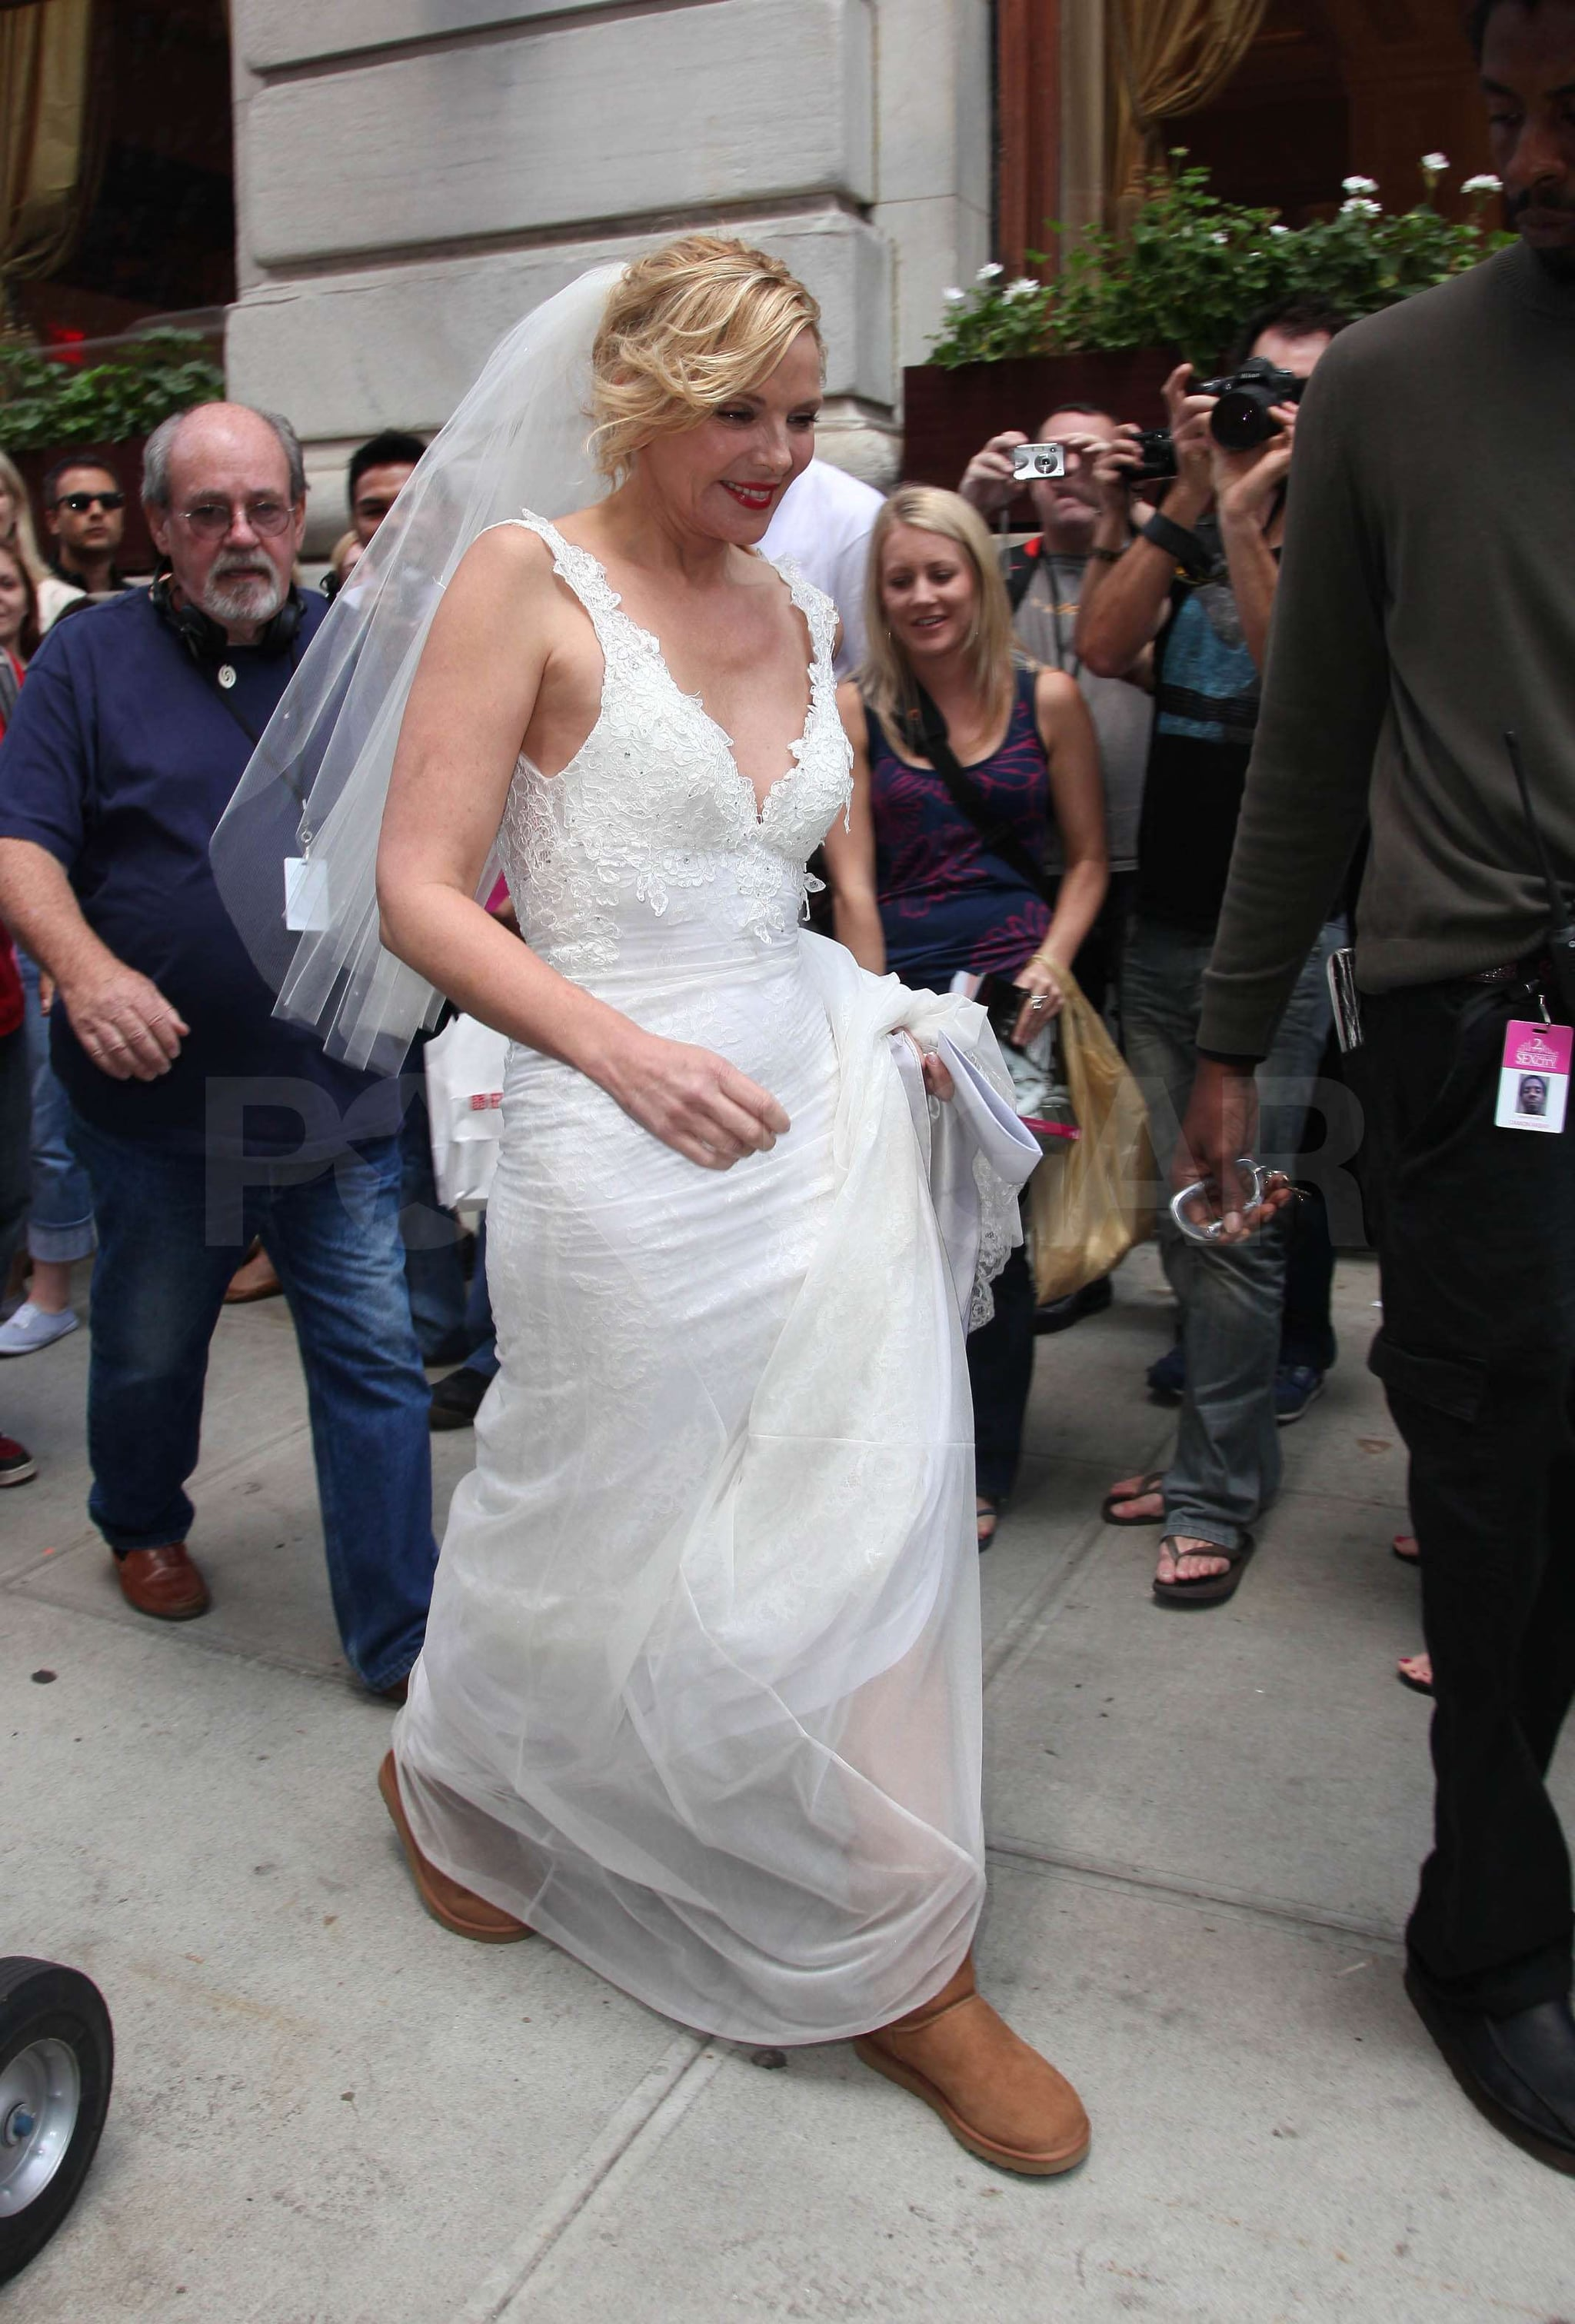 Photos Of Sarah Jessica Parker And Kim Cattrall In A Wedding Dress